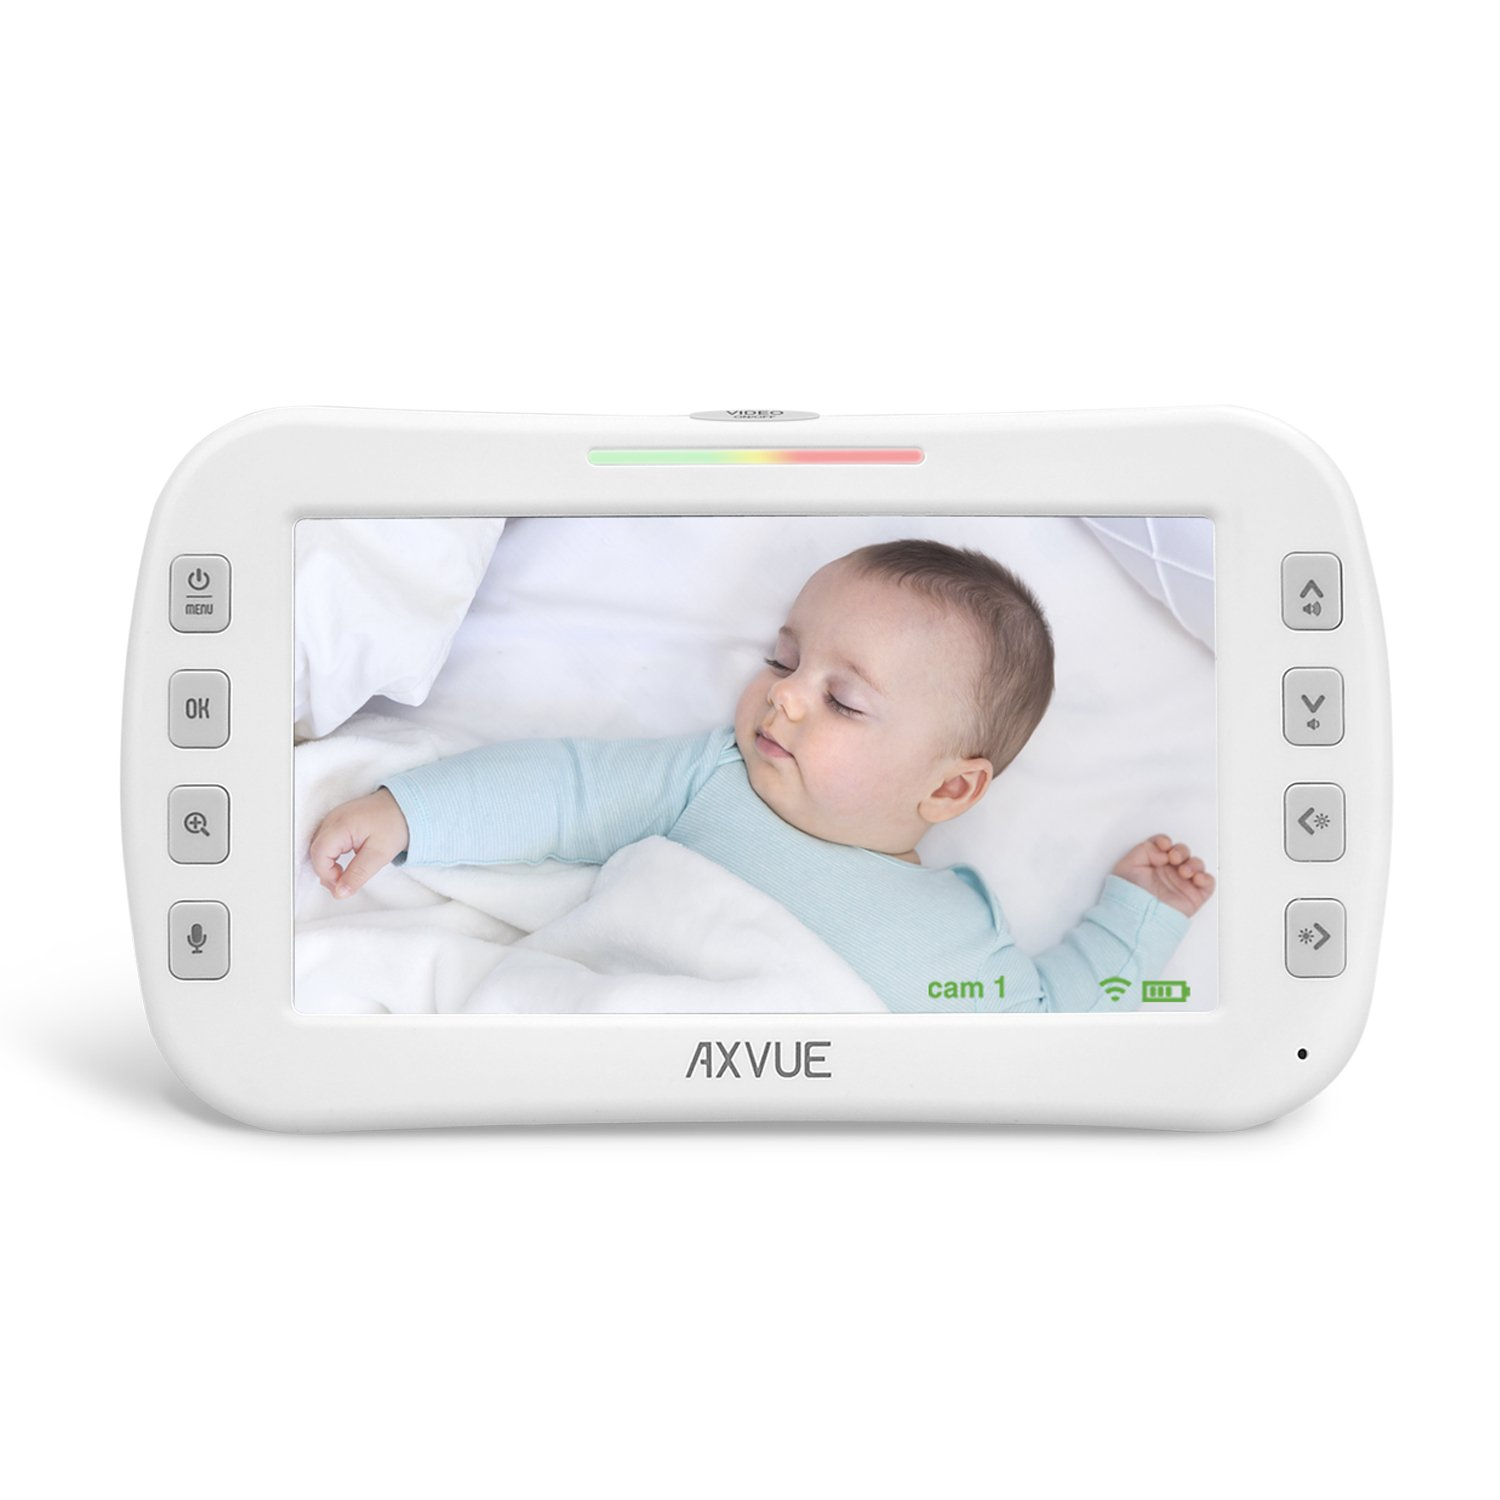 Additional Monitor for AXVUE Video Baby Monitor E632R